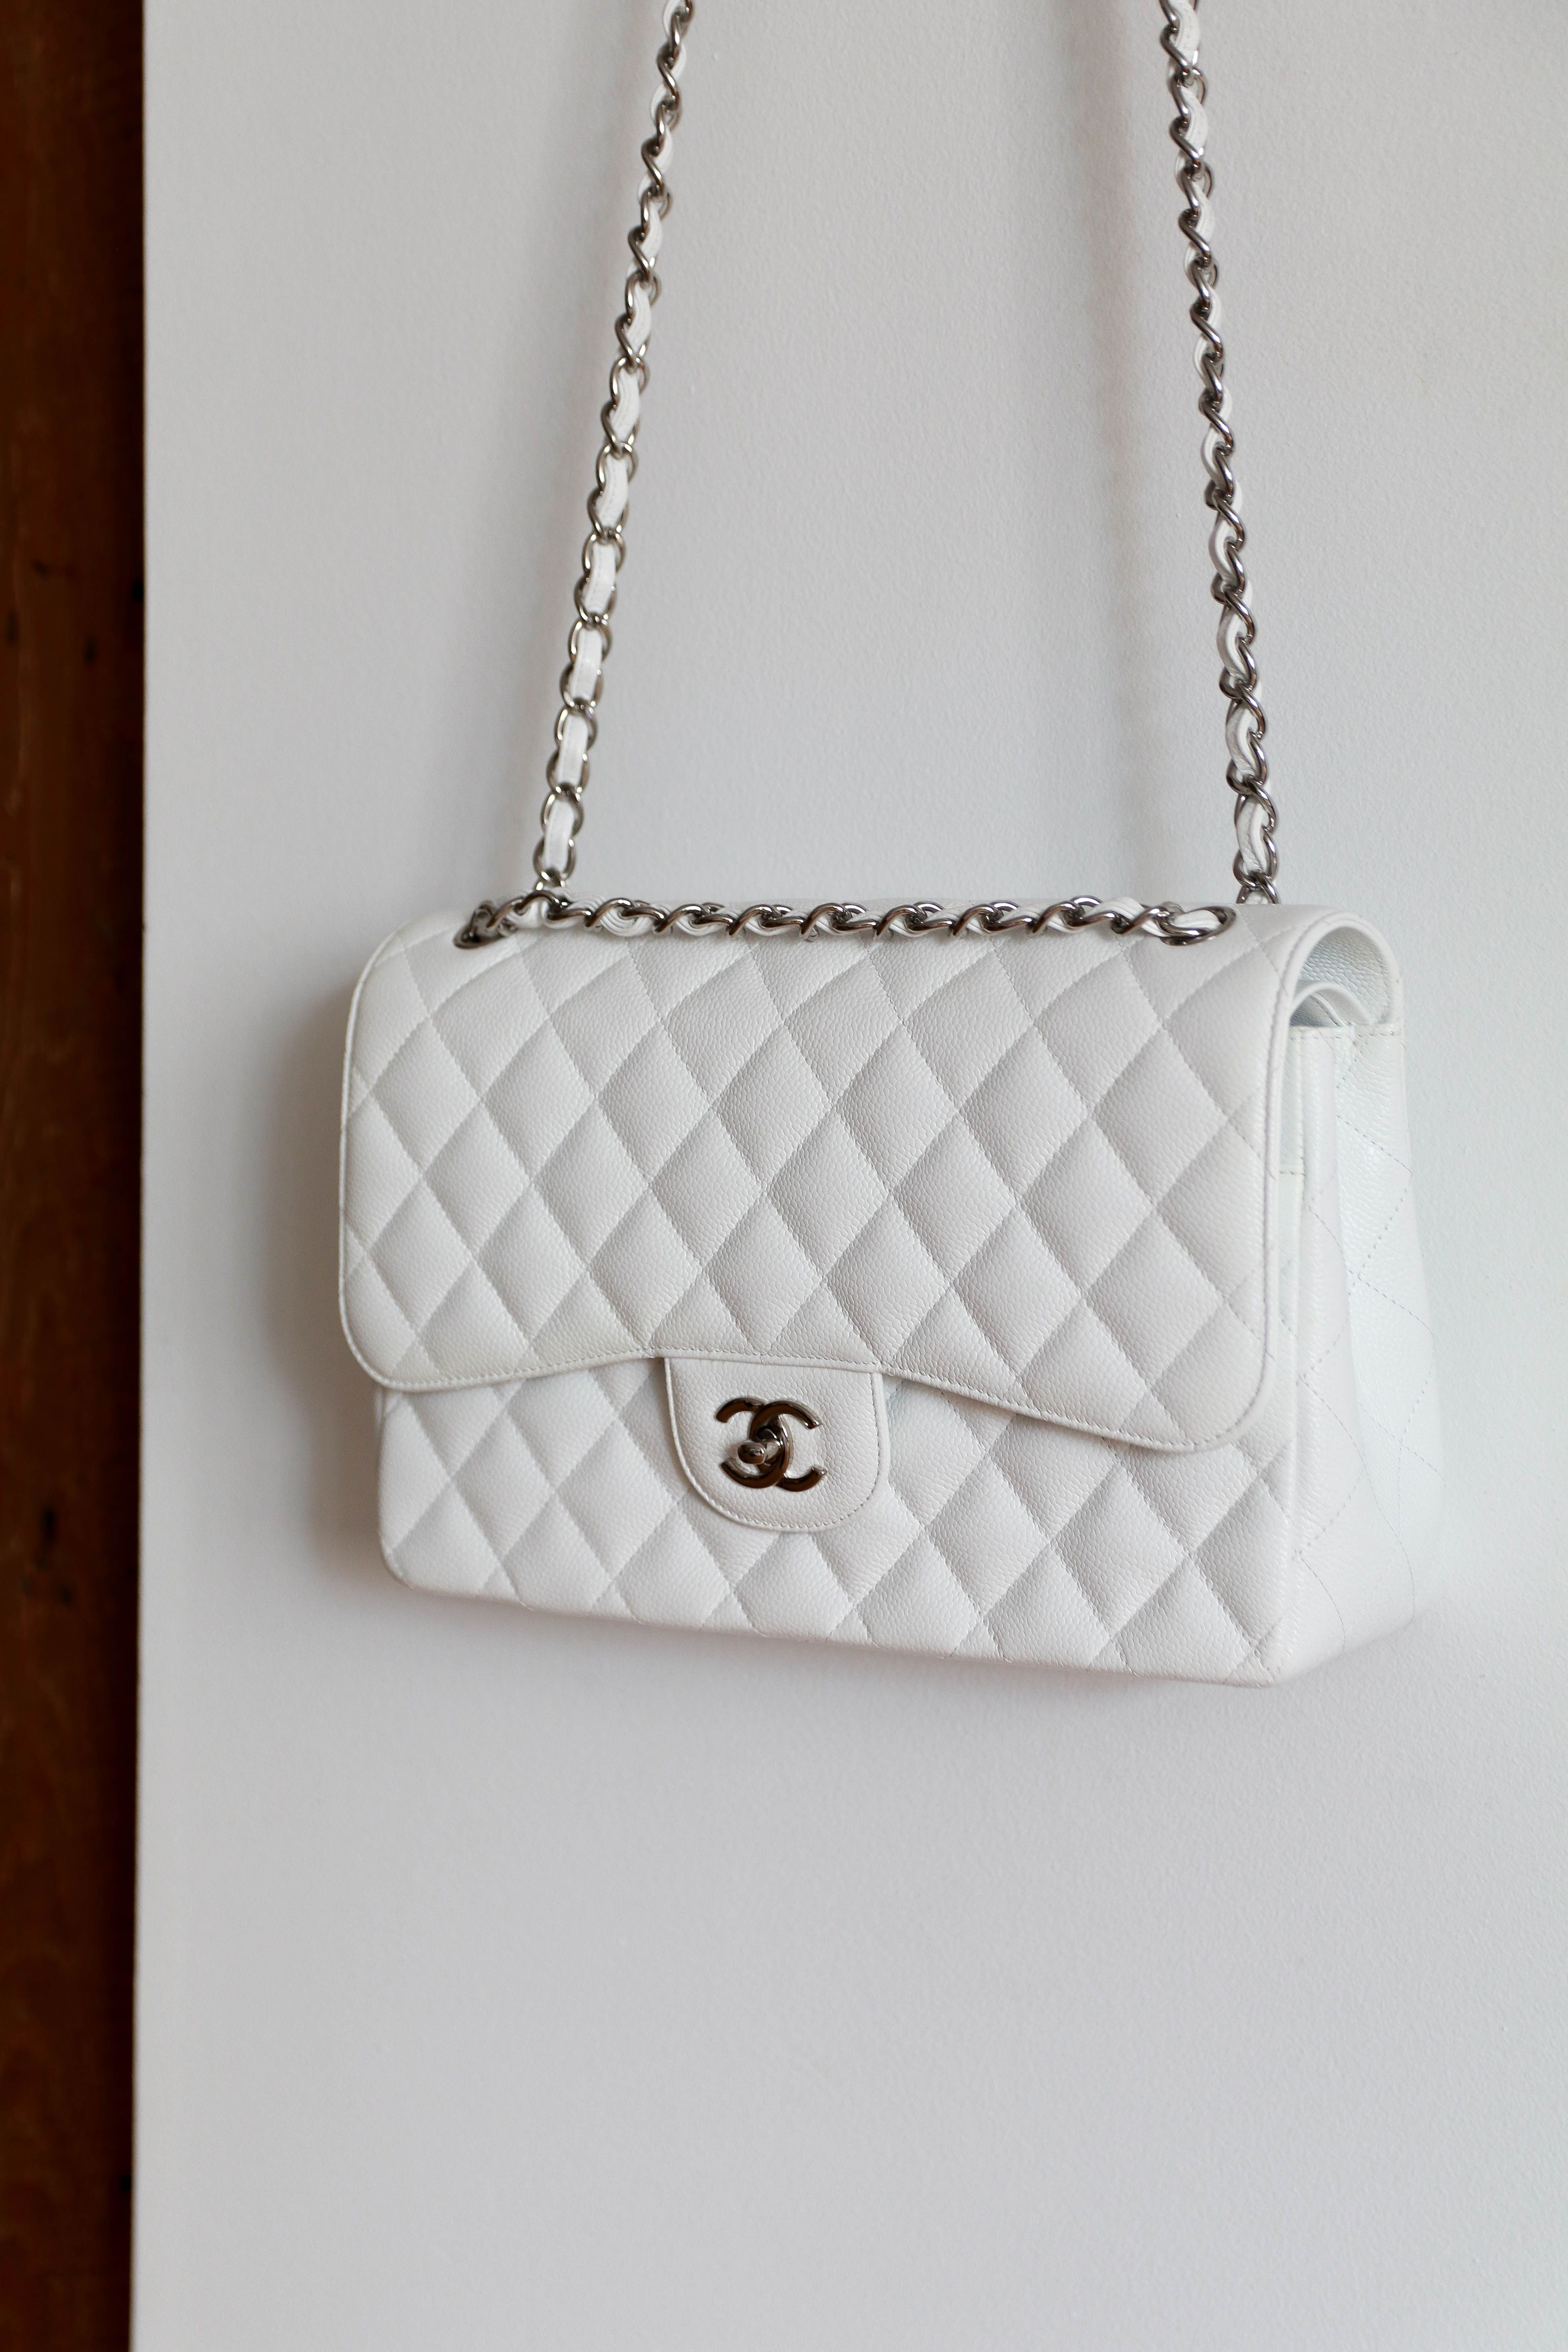 5 Amazing Things You Never Knew About Chanel